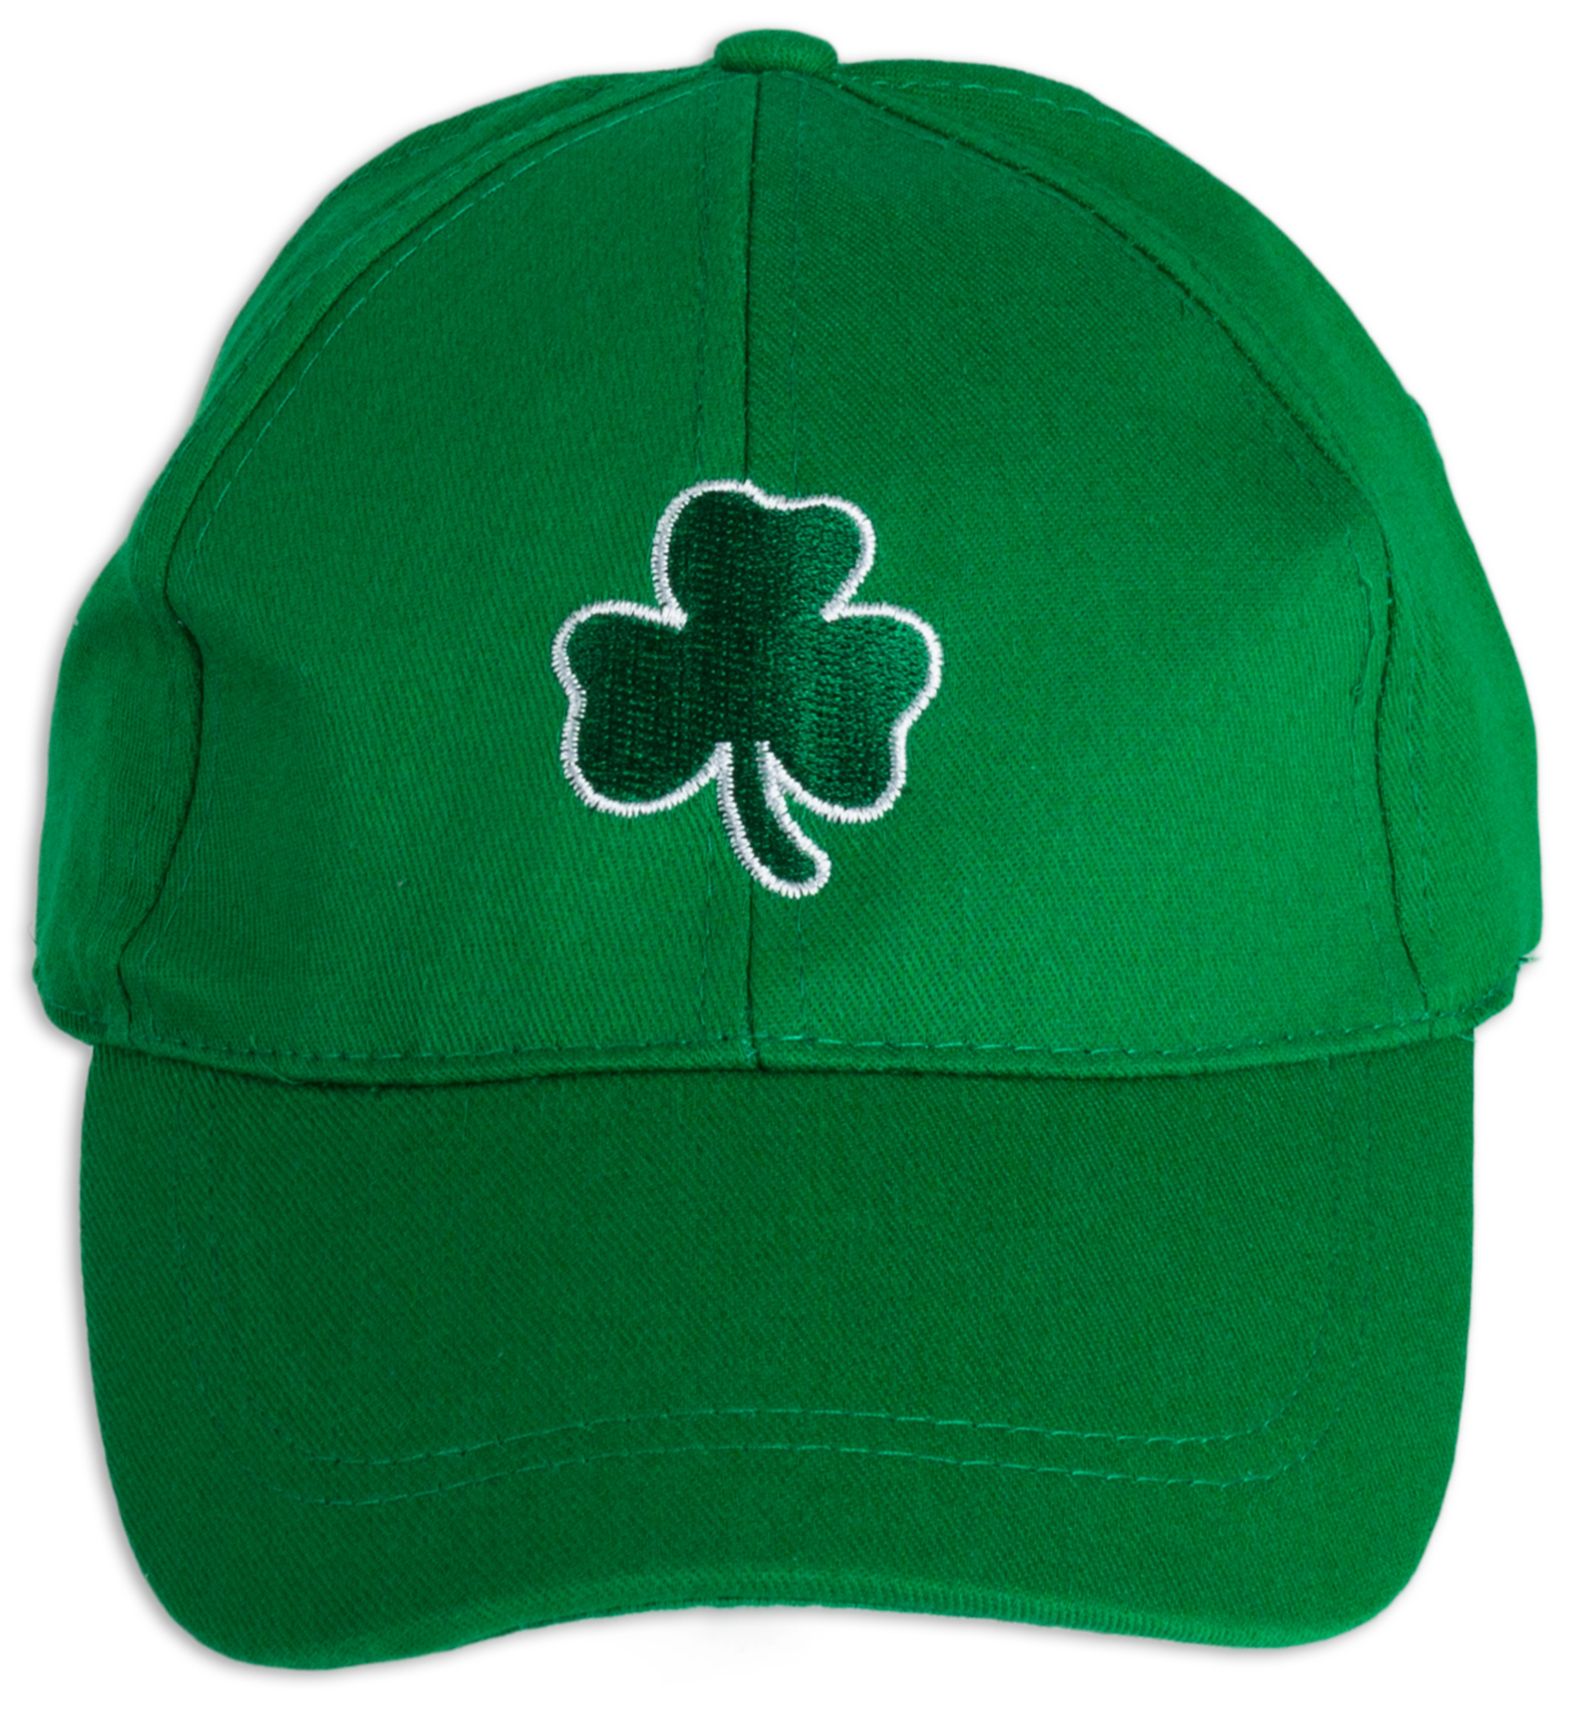 4837f0882a8 Shamrock Baseball Cap Get Your Green On St Patrick s Hat